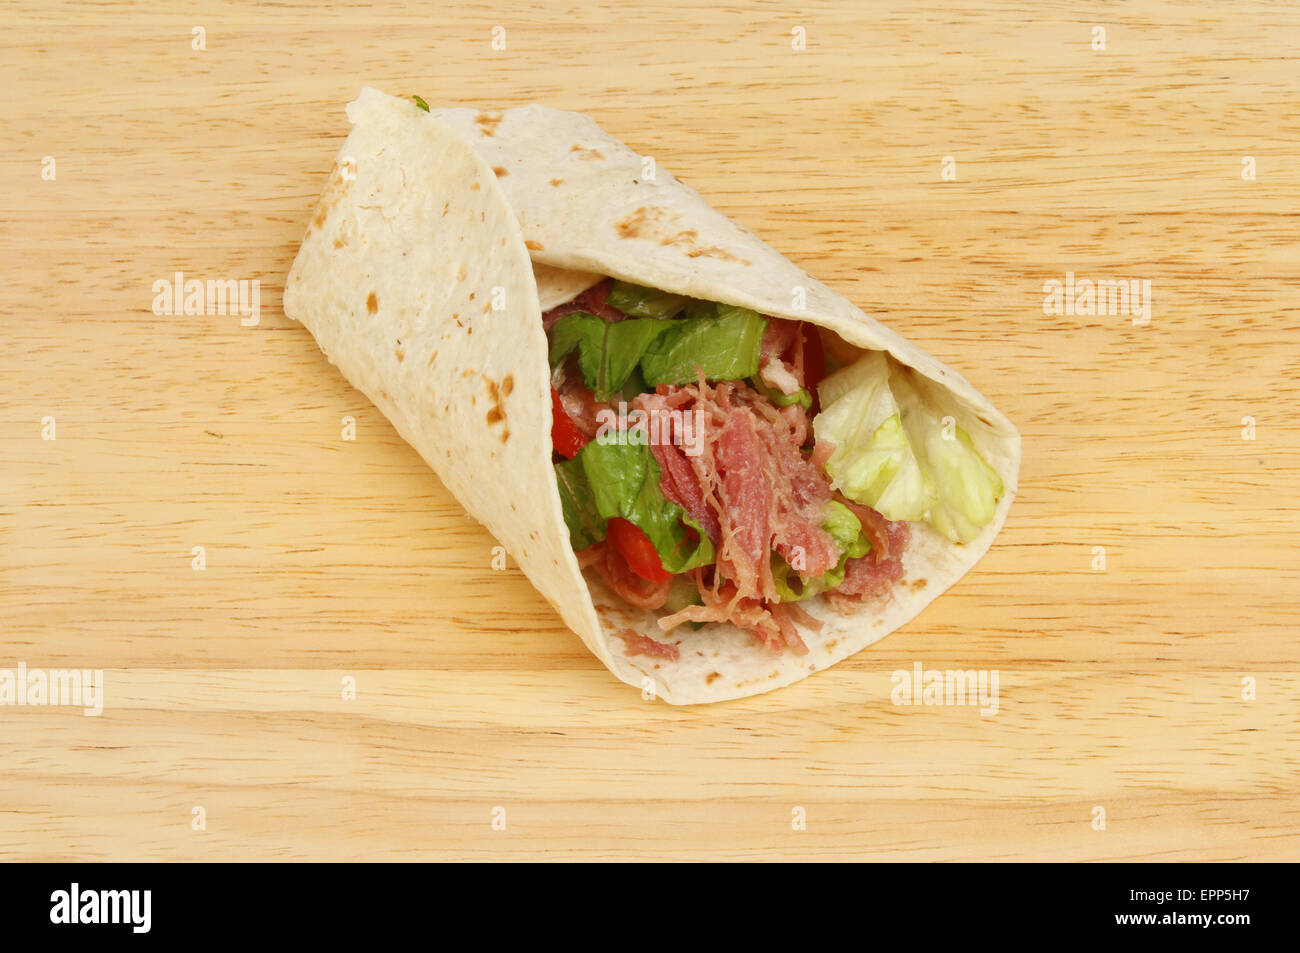 Pulled pork and salad bread wrap on a wooden board - Stock Image